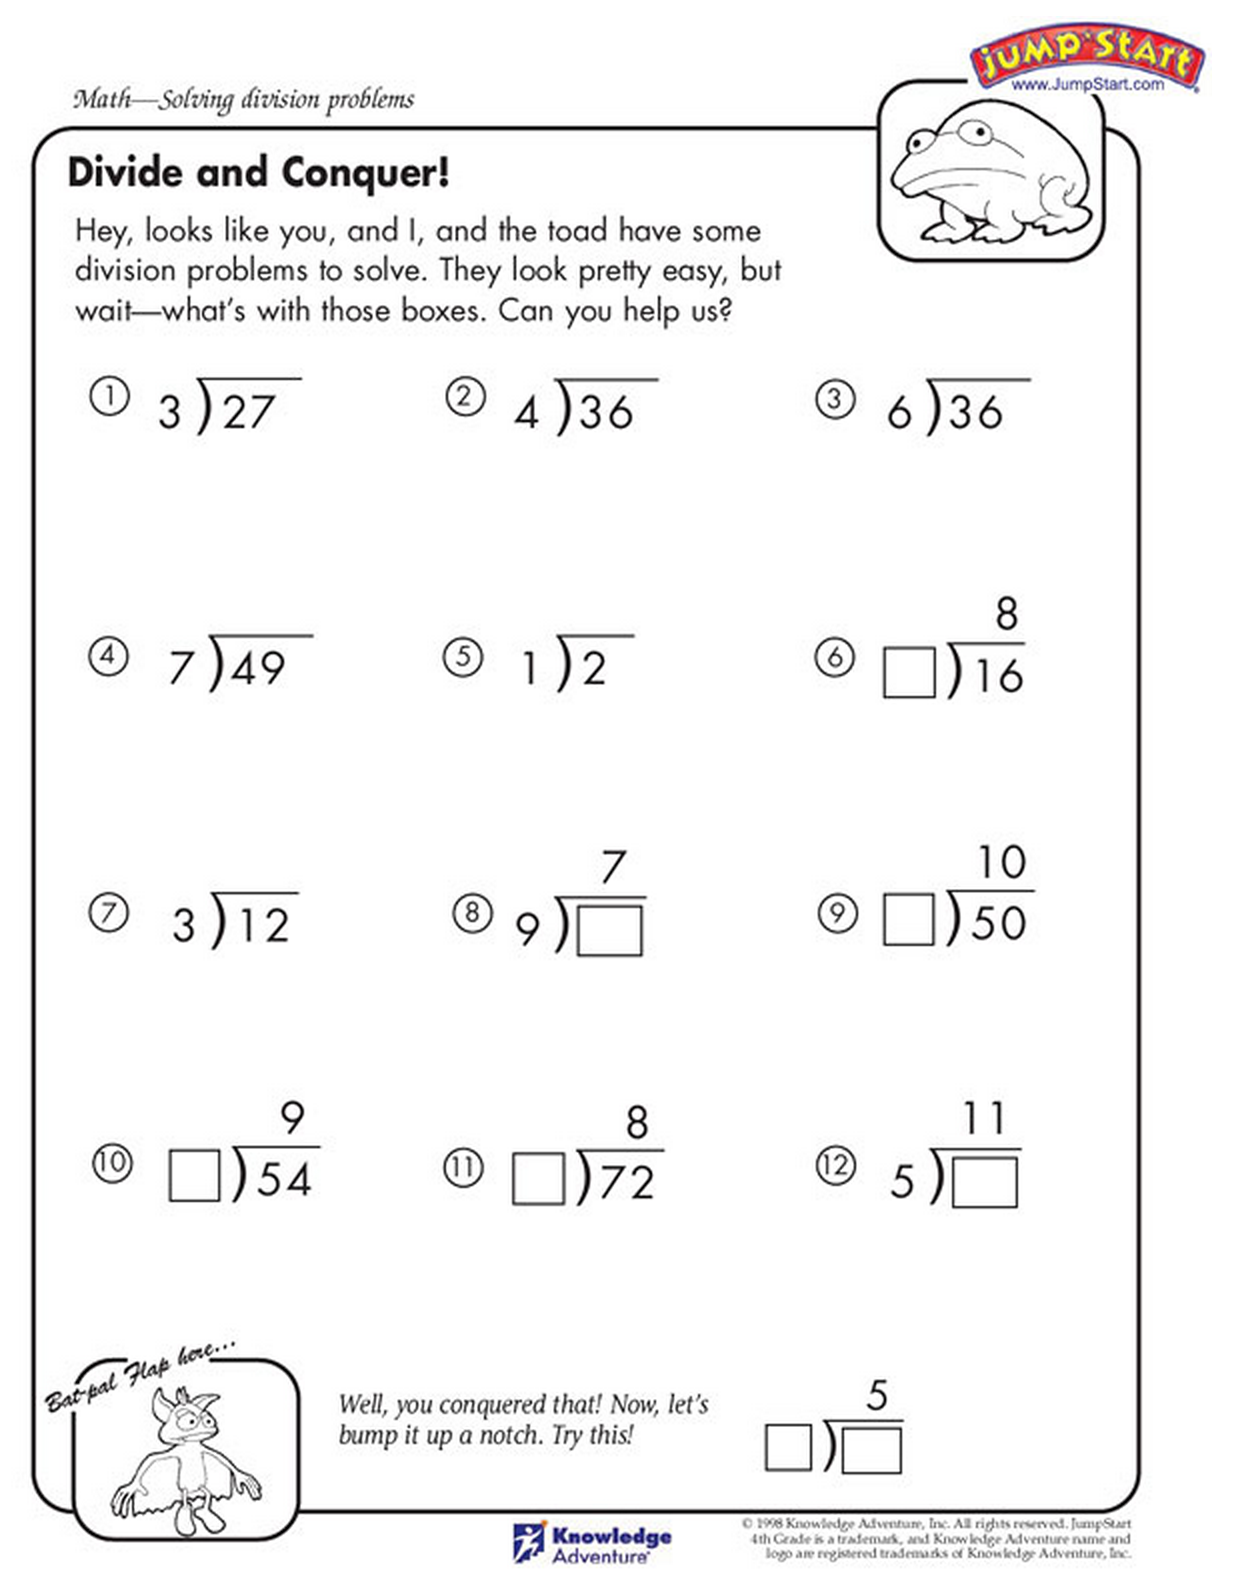 Help mister toad solve these division problems!   Math practice worksheets [ 1586 x 1240 Pixel ]